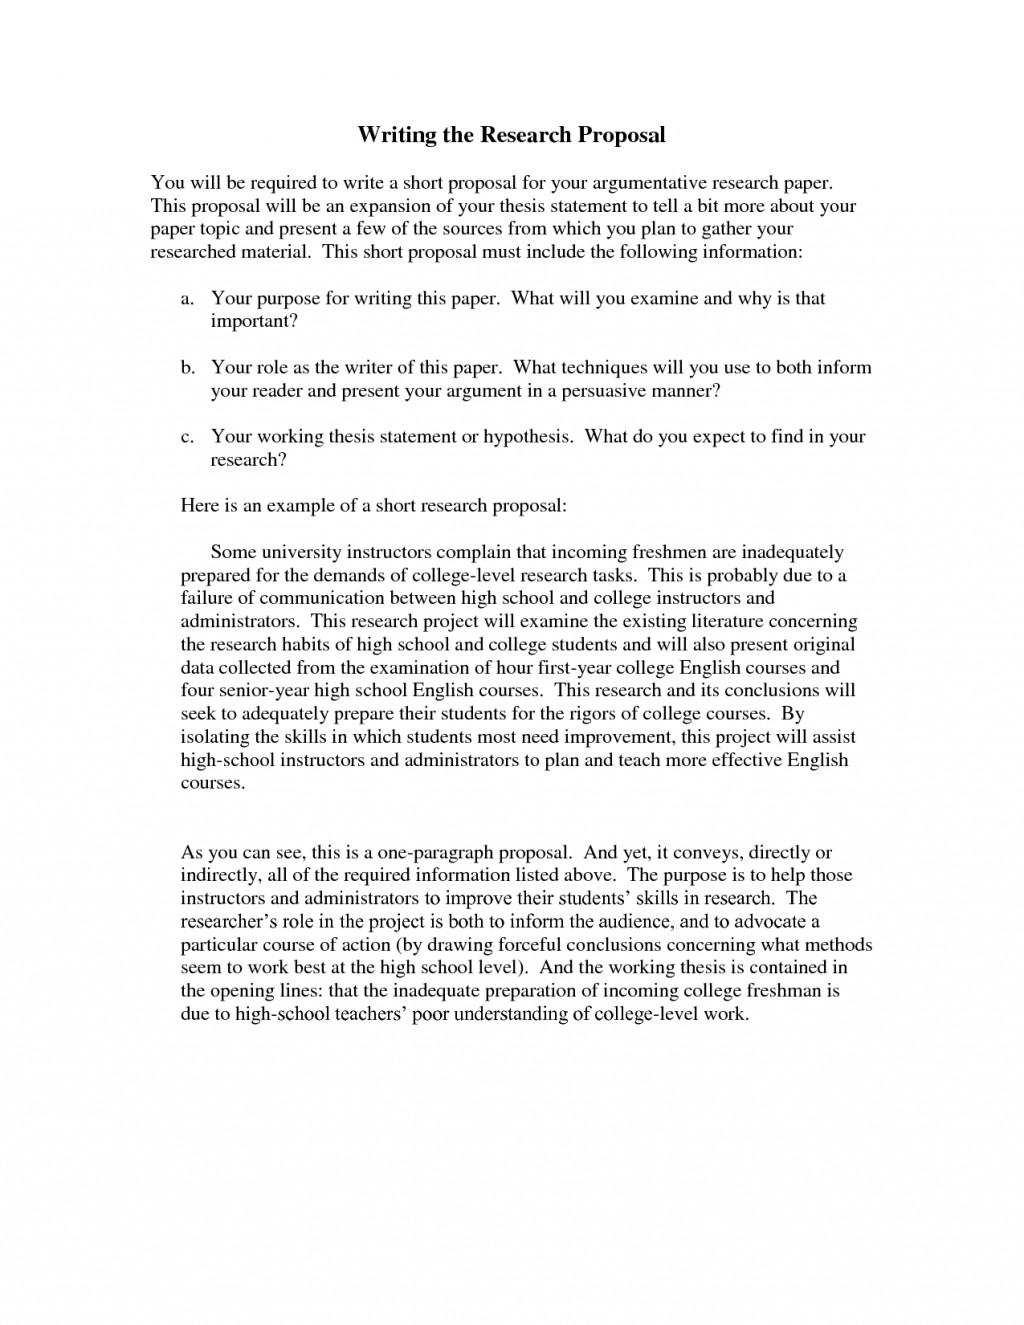 004 Argumentative Research Paper Topics About Magnificent Music Large